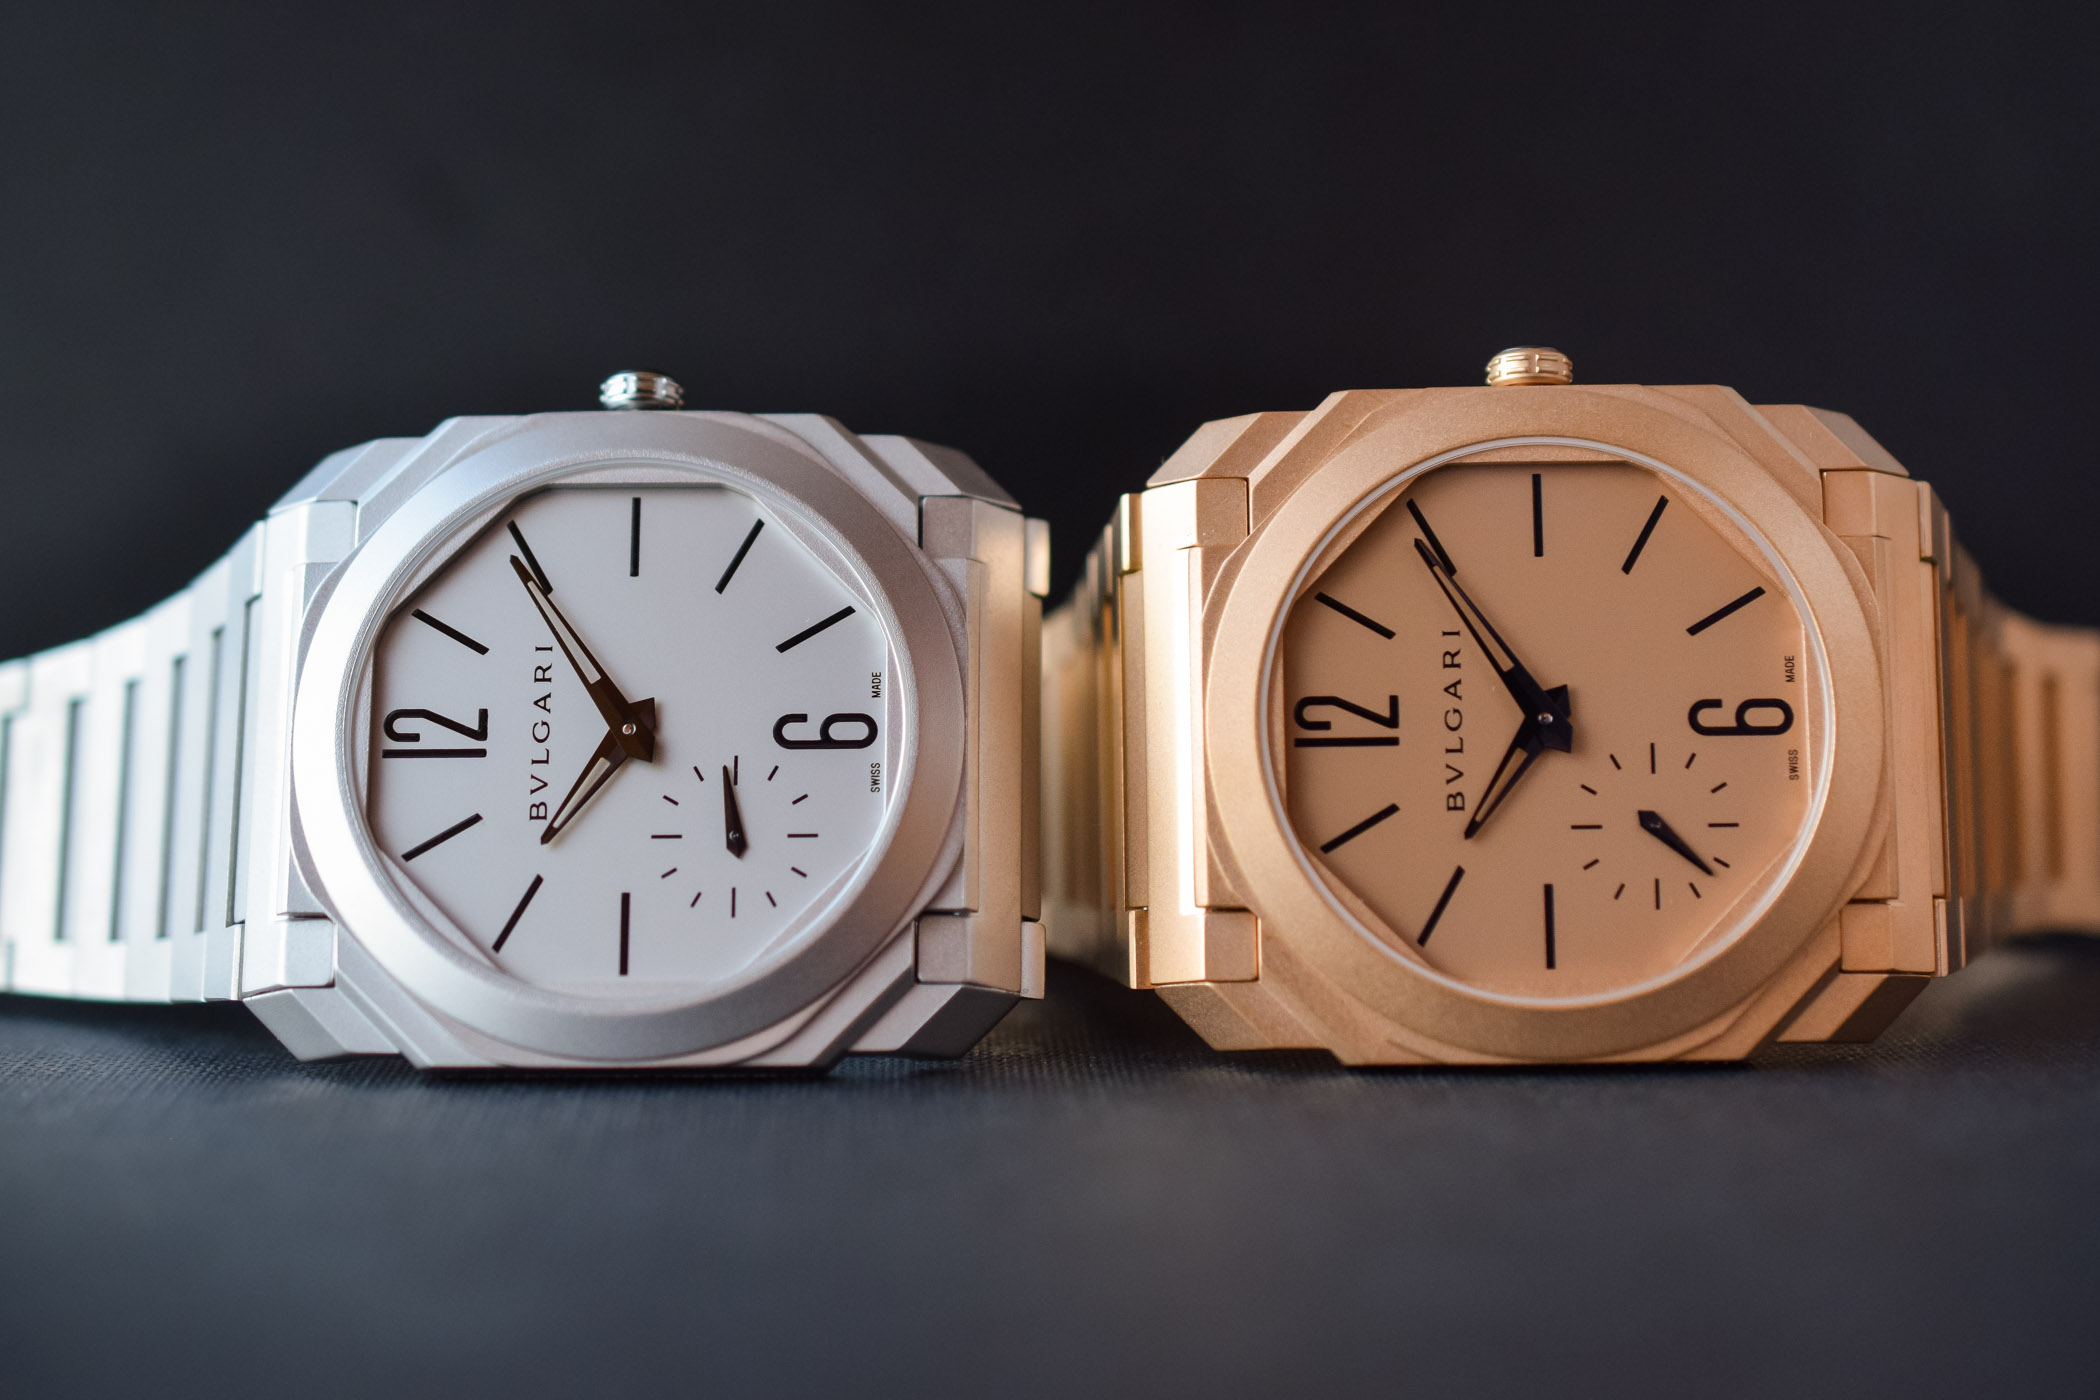 Bvlgari Octo Finissimo Automatic Steel and pink gold - Baselworld 2018